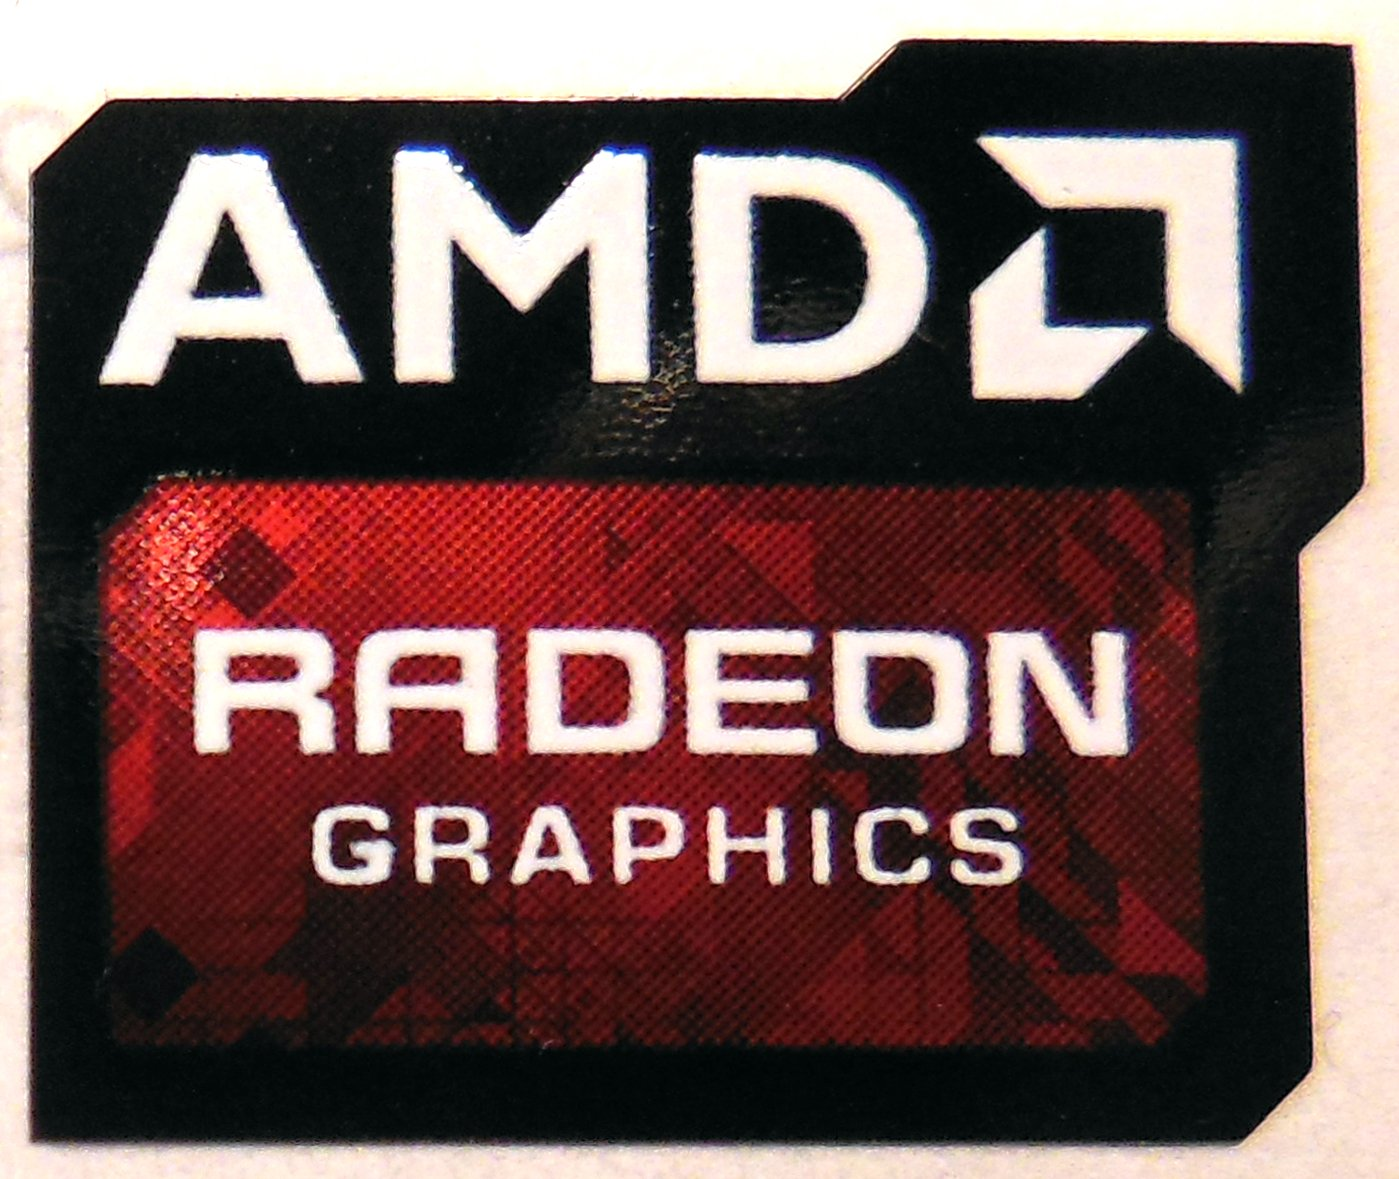 AMD Original Radeon Graphics Sticker 16 x 20mm [778]